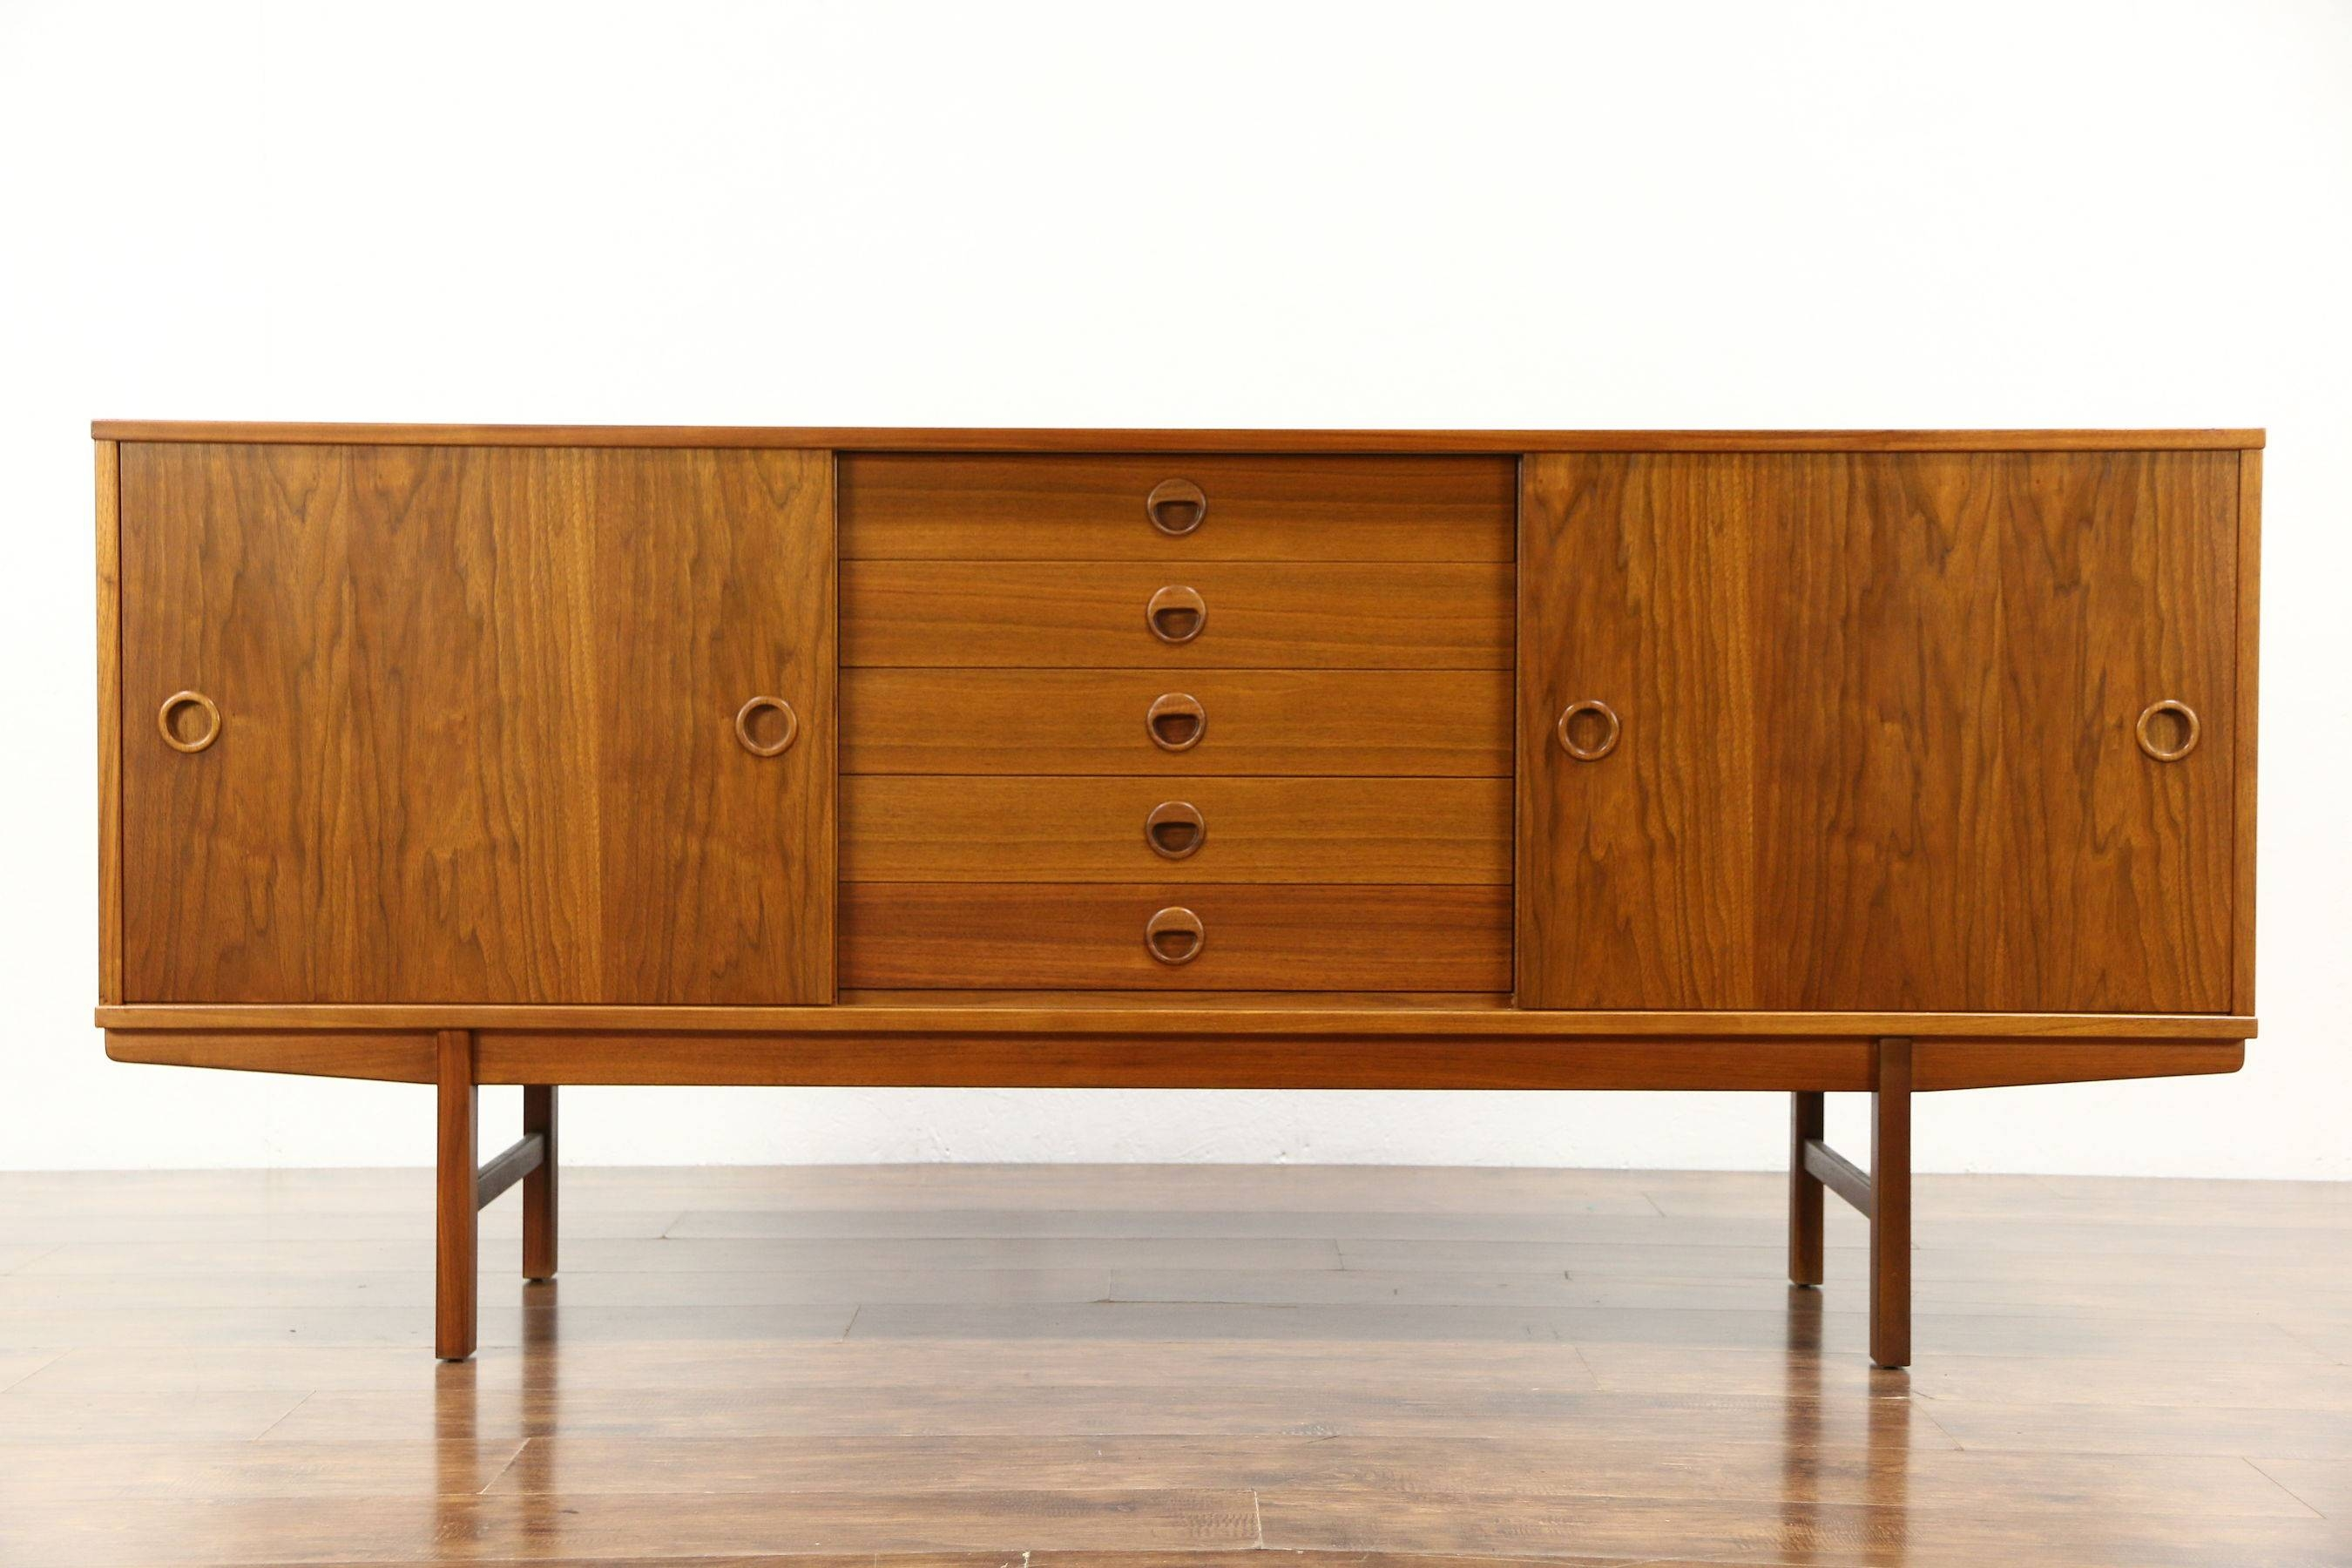 Sold - Midcentury Modern 1960's Teak Credenza, Sideboard, Tv for Credenza Sideboards (Image 15 of 15)